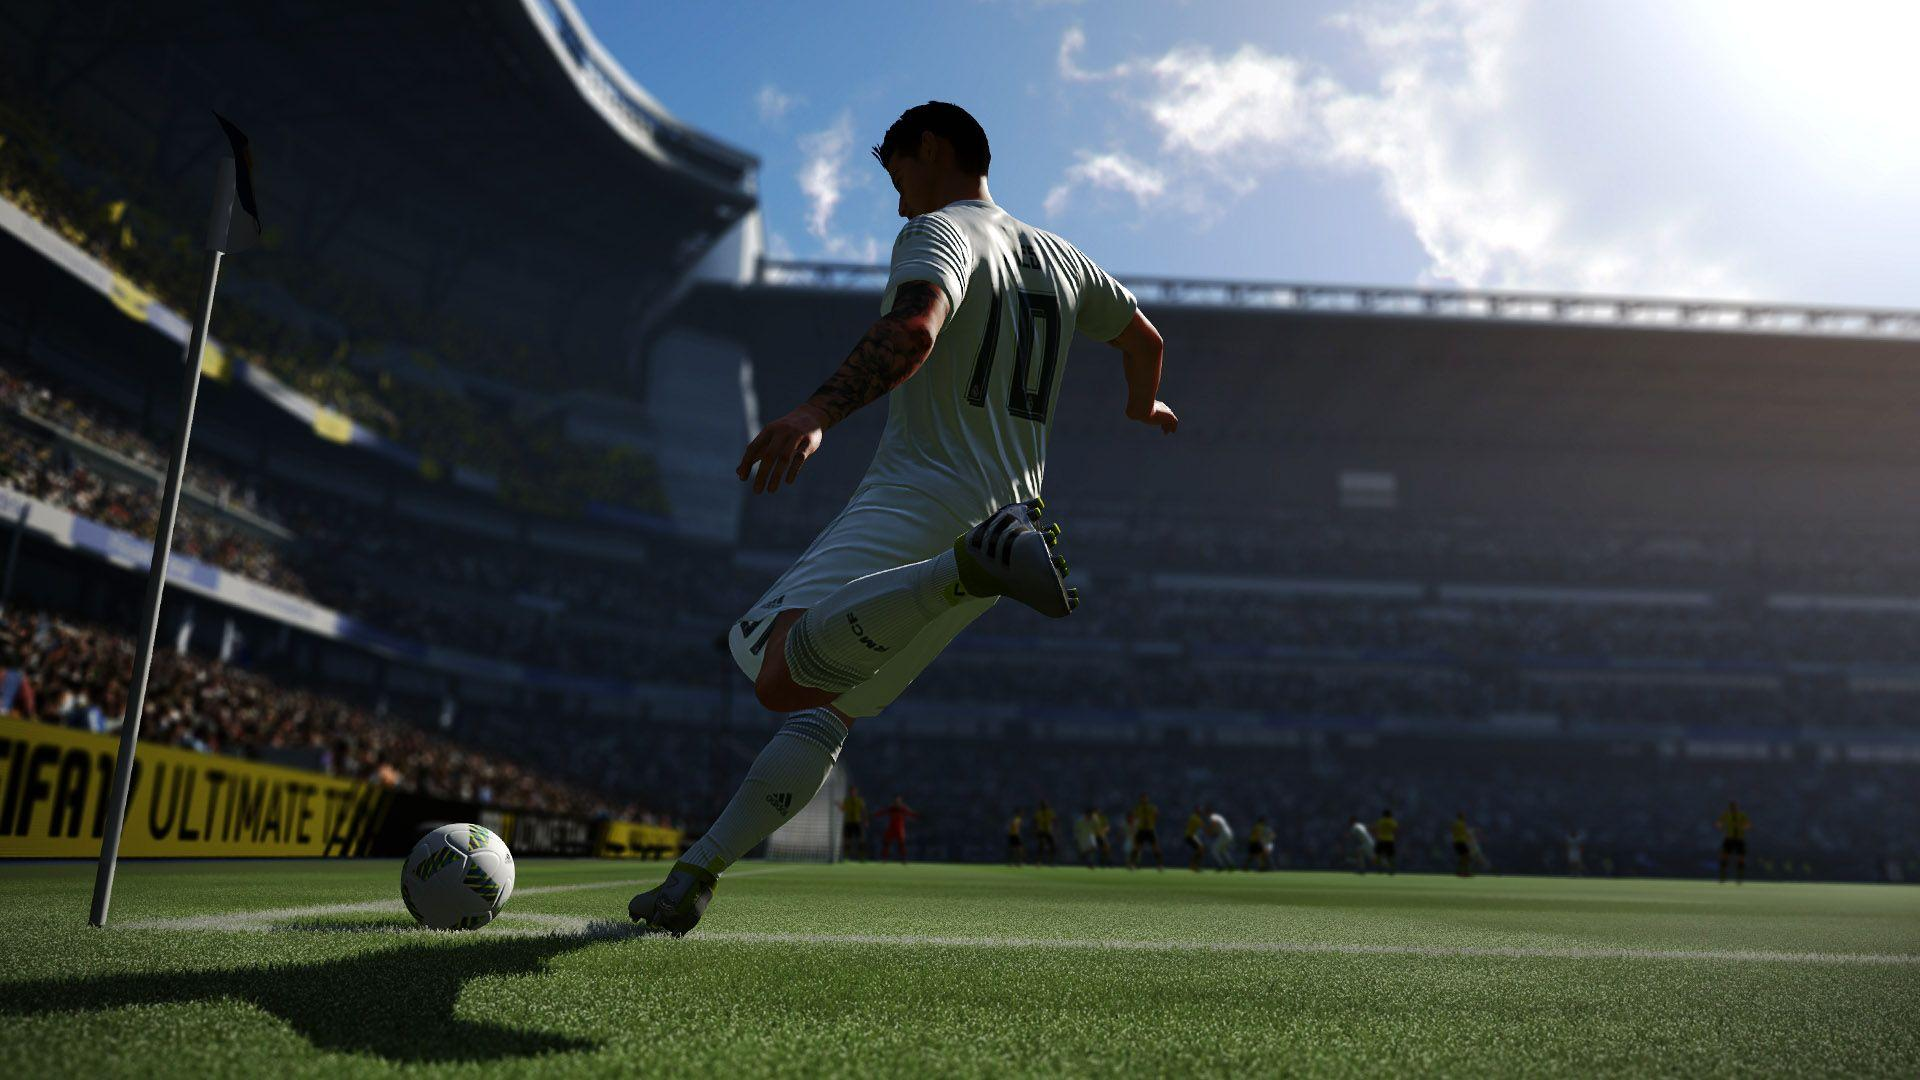 FIFA 17 Wallpapers - Free Games Wallpaper on iPlayTube